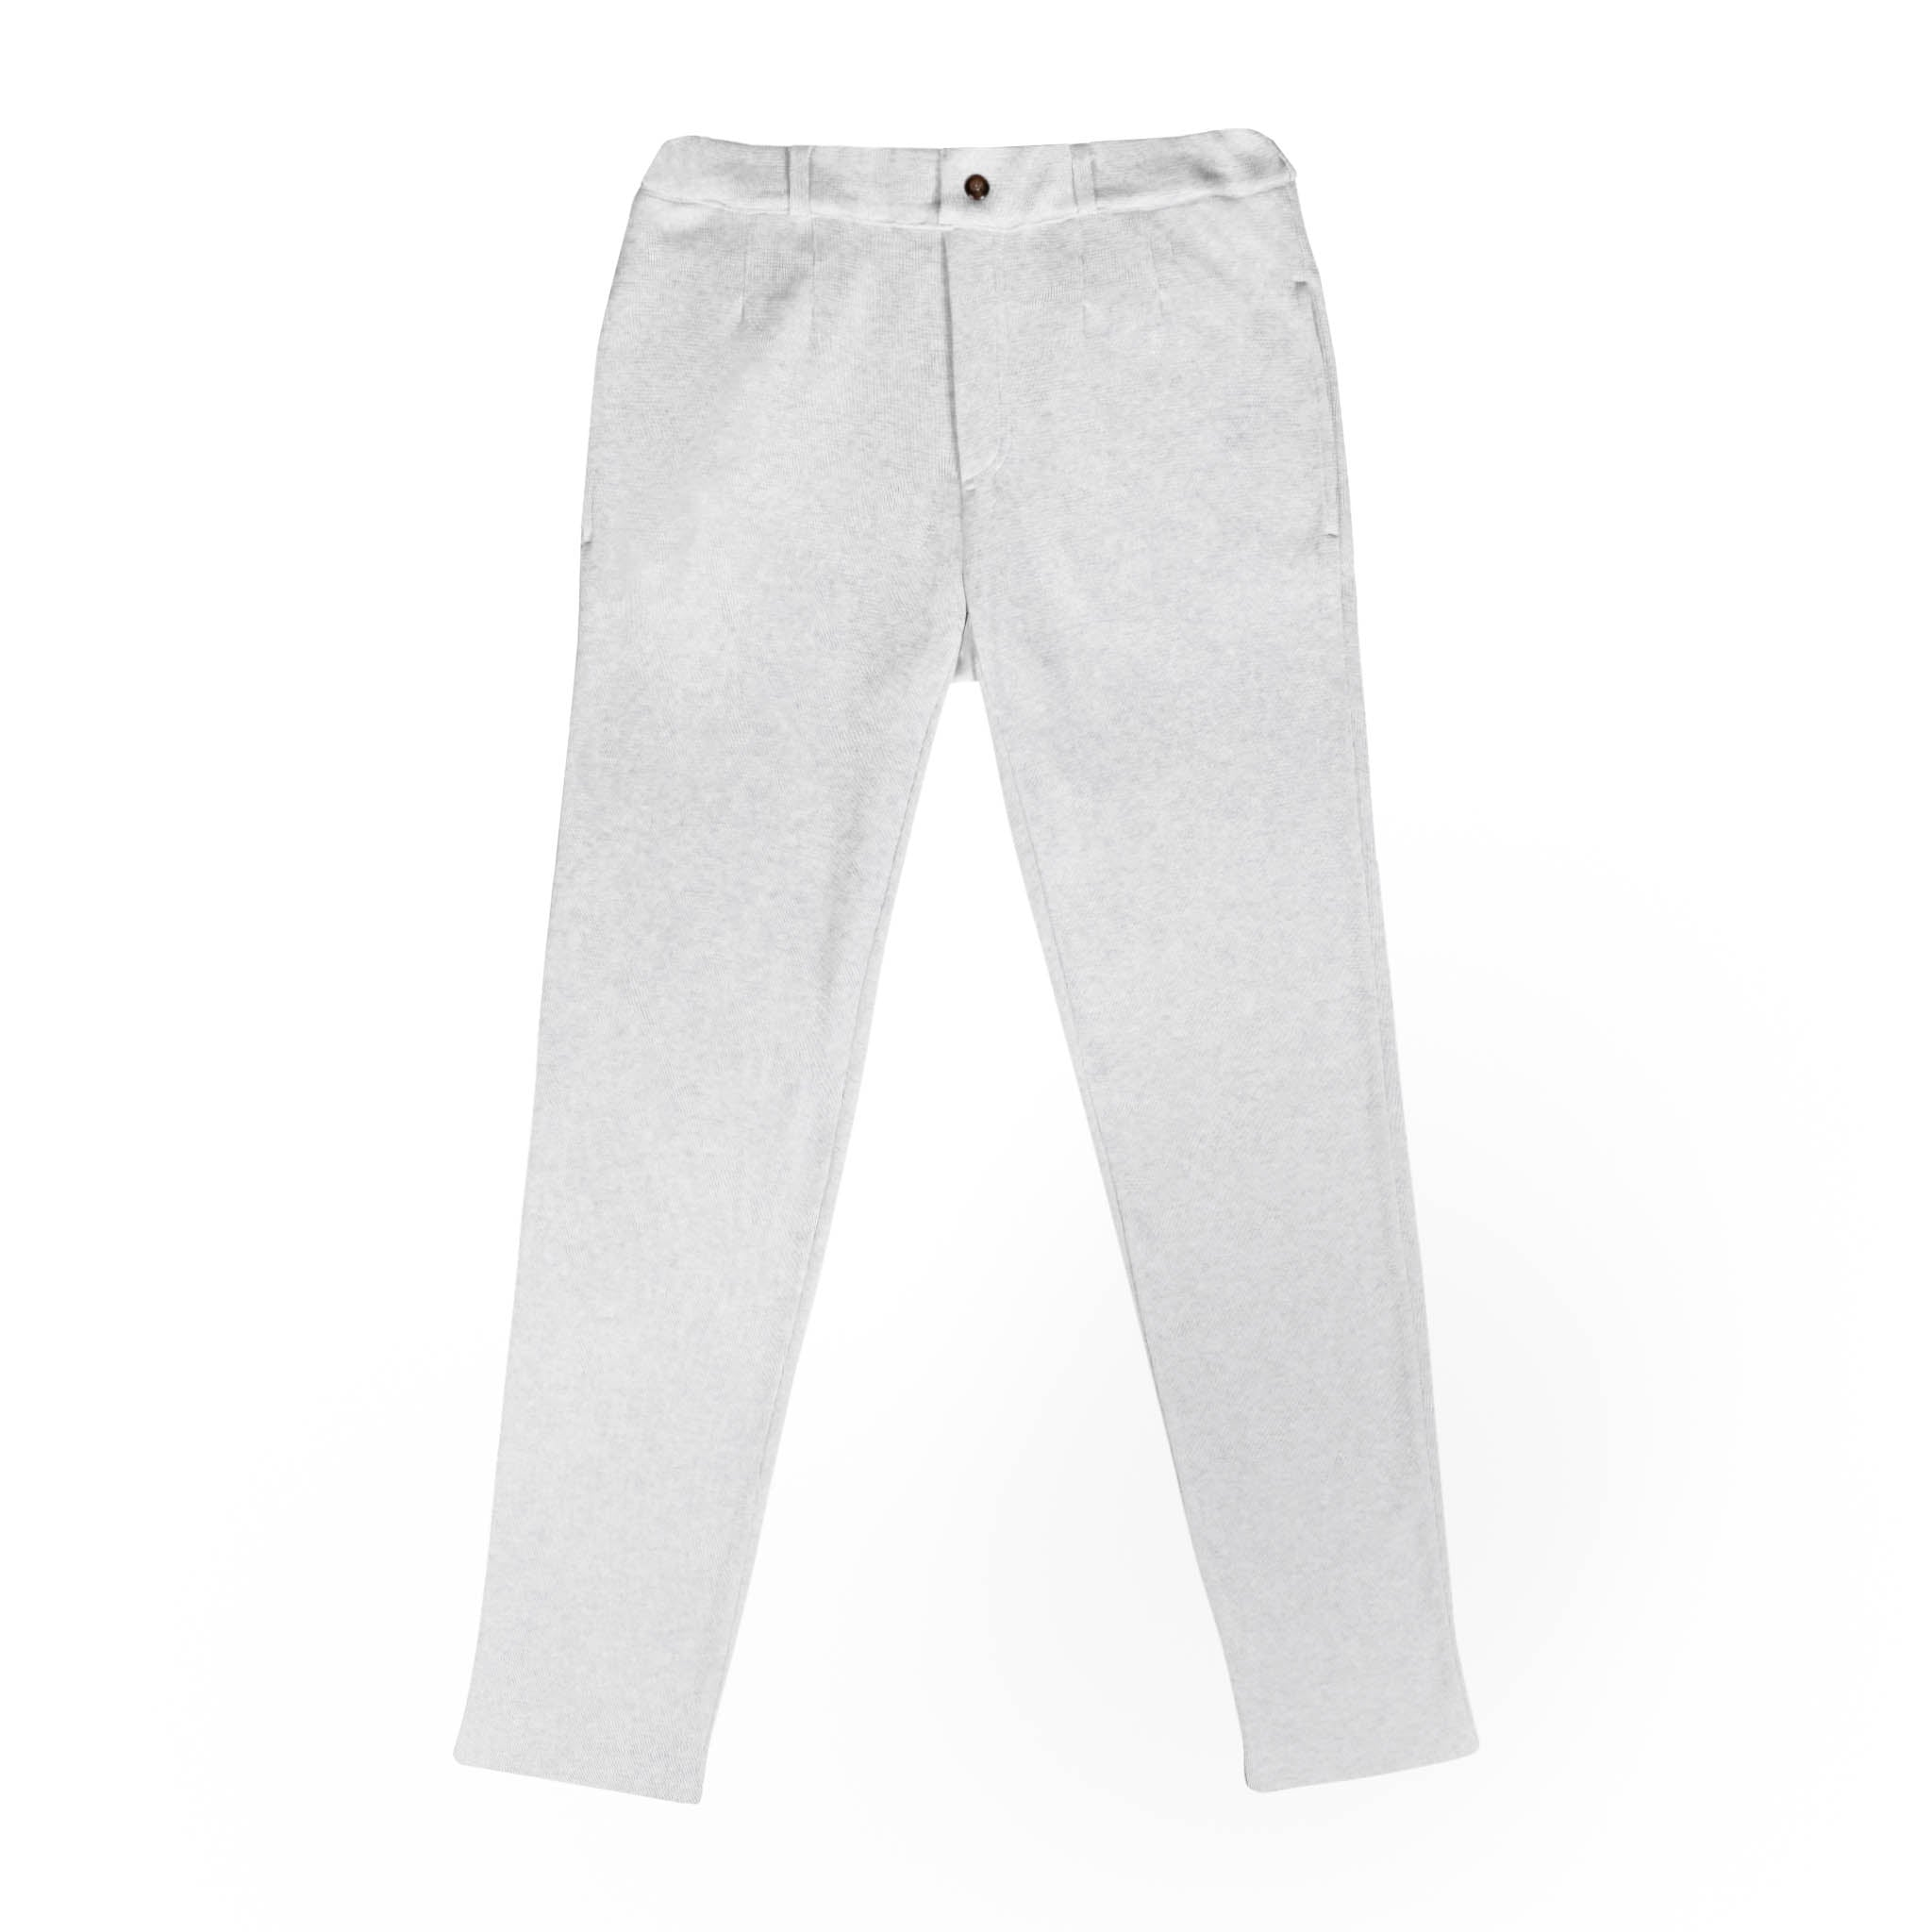 Arno chino made in France oeko tex - homewear made in France